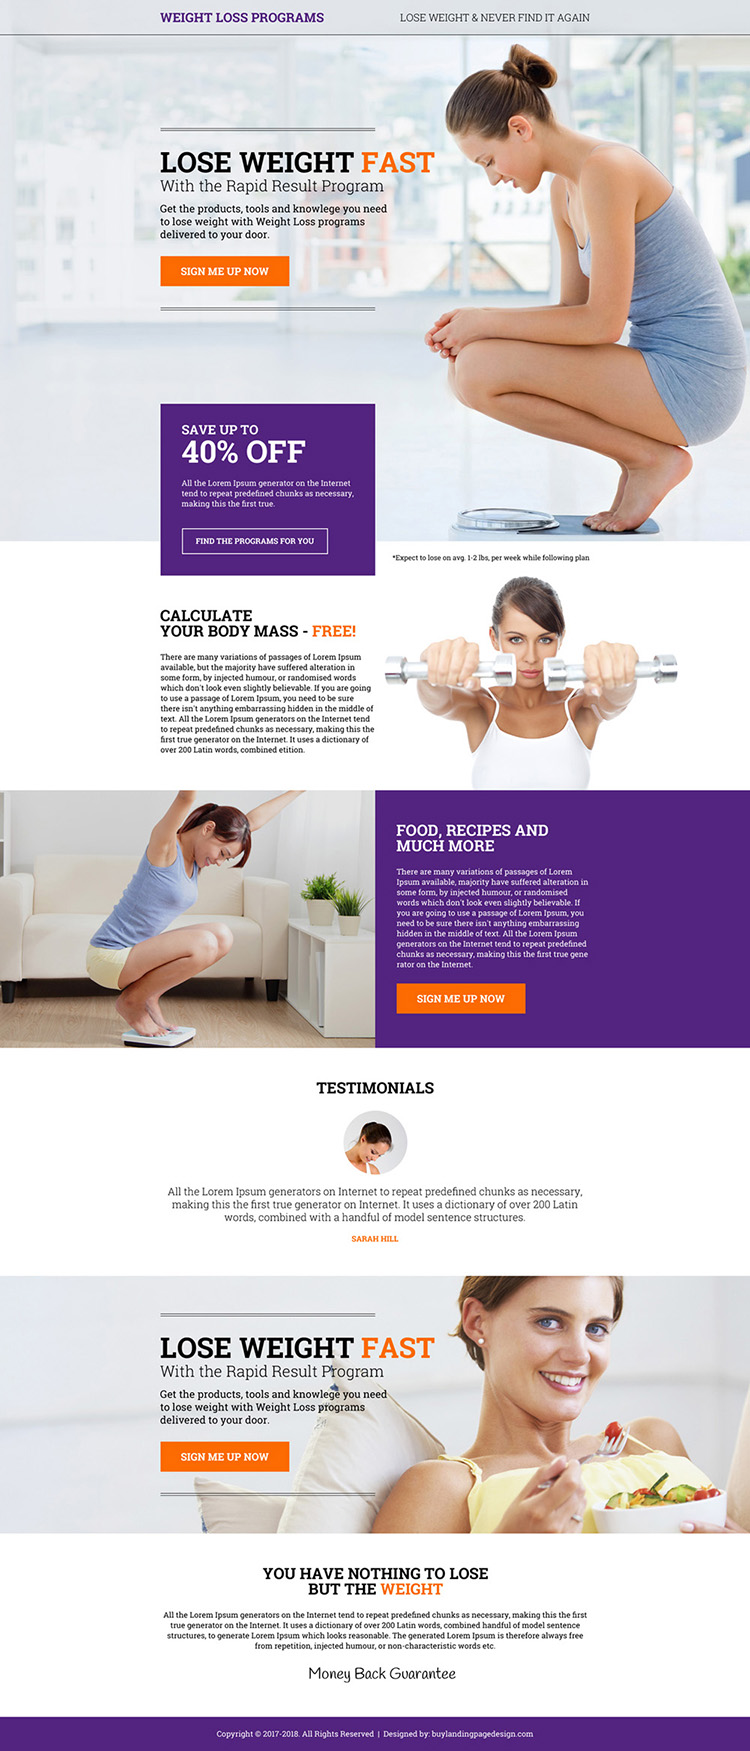 weight loss programs sign up capturing modern landing page design